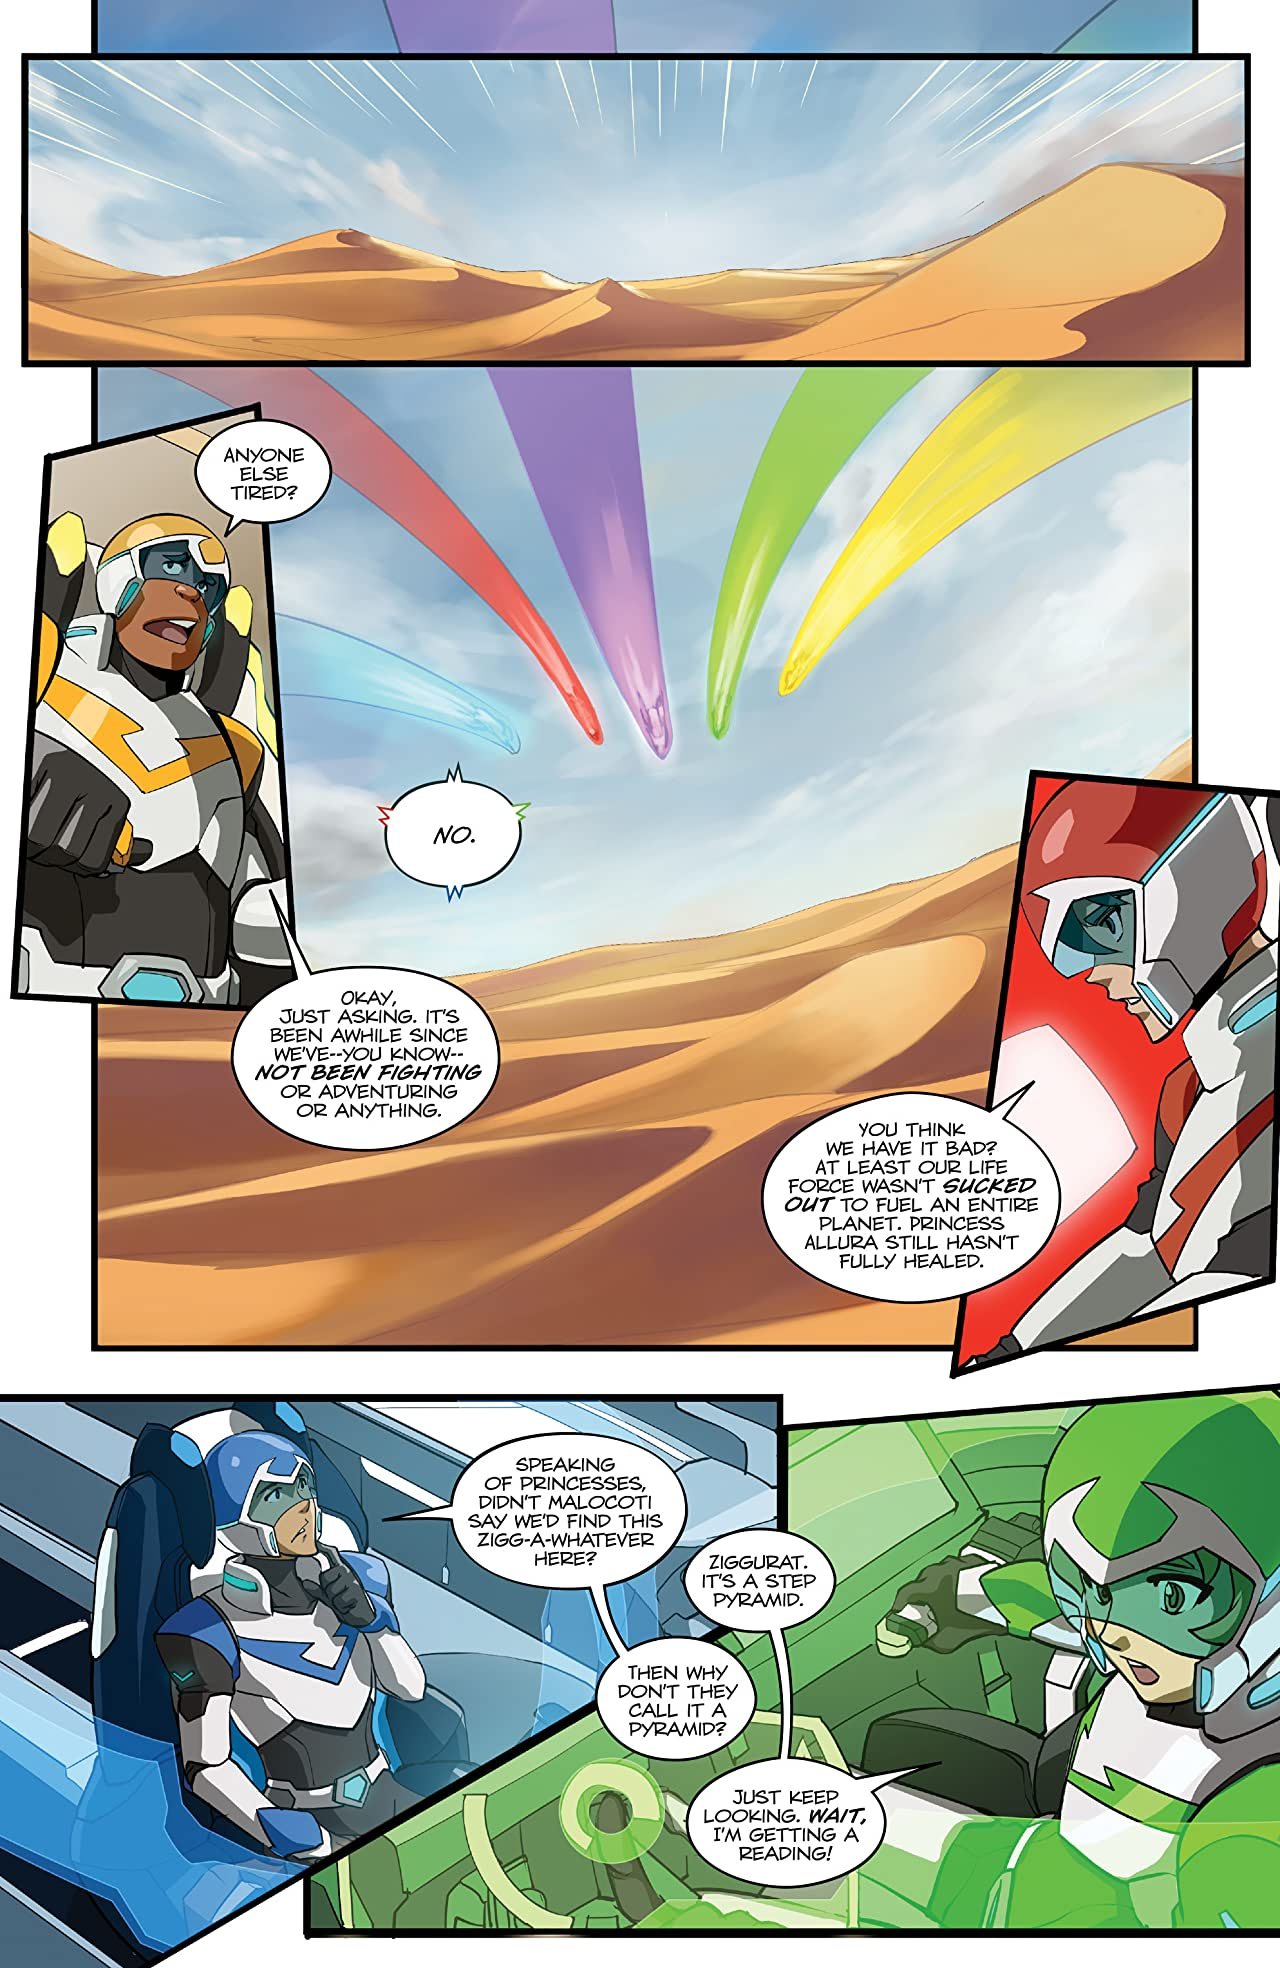 Voltron: Legendary Defender #4 (of 5)